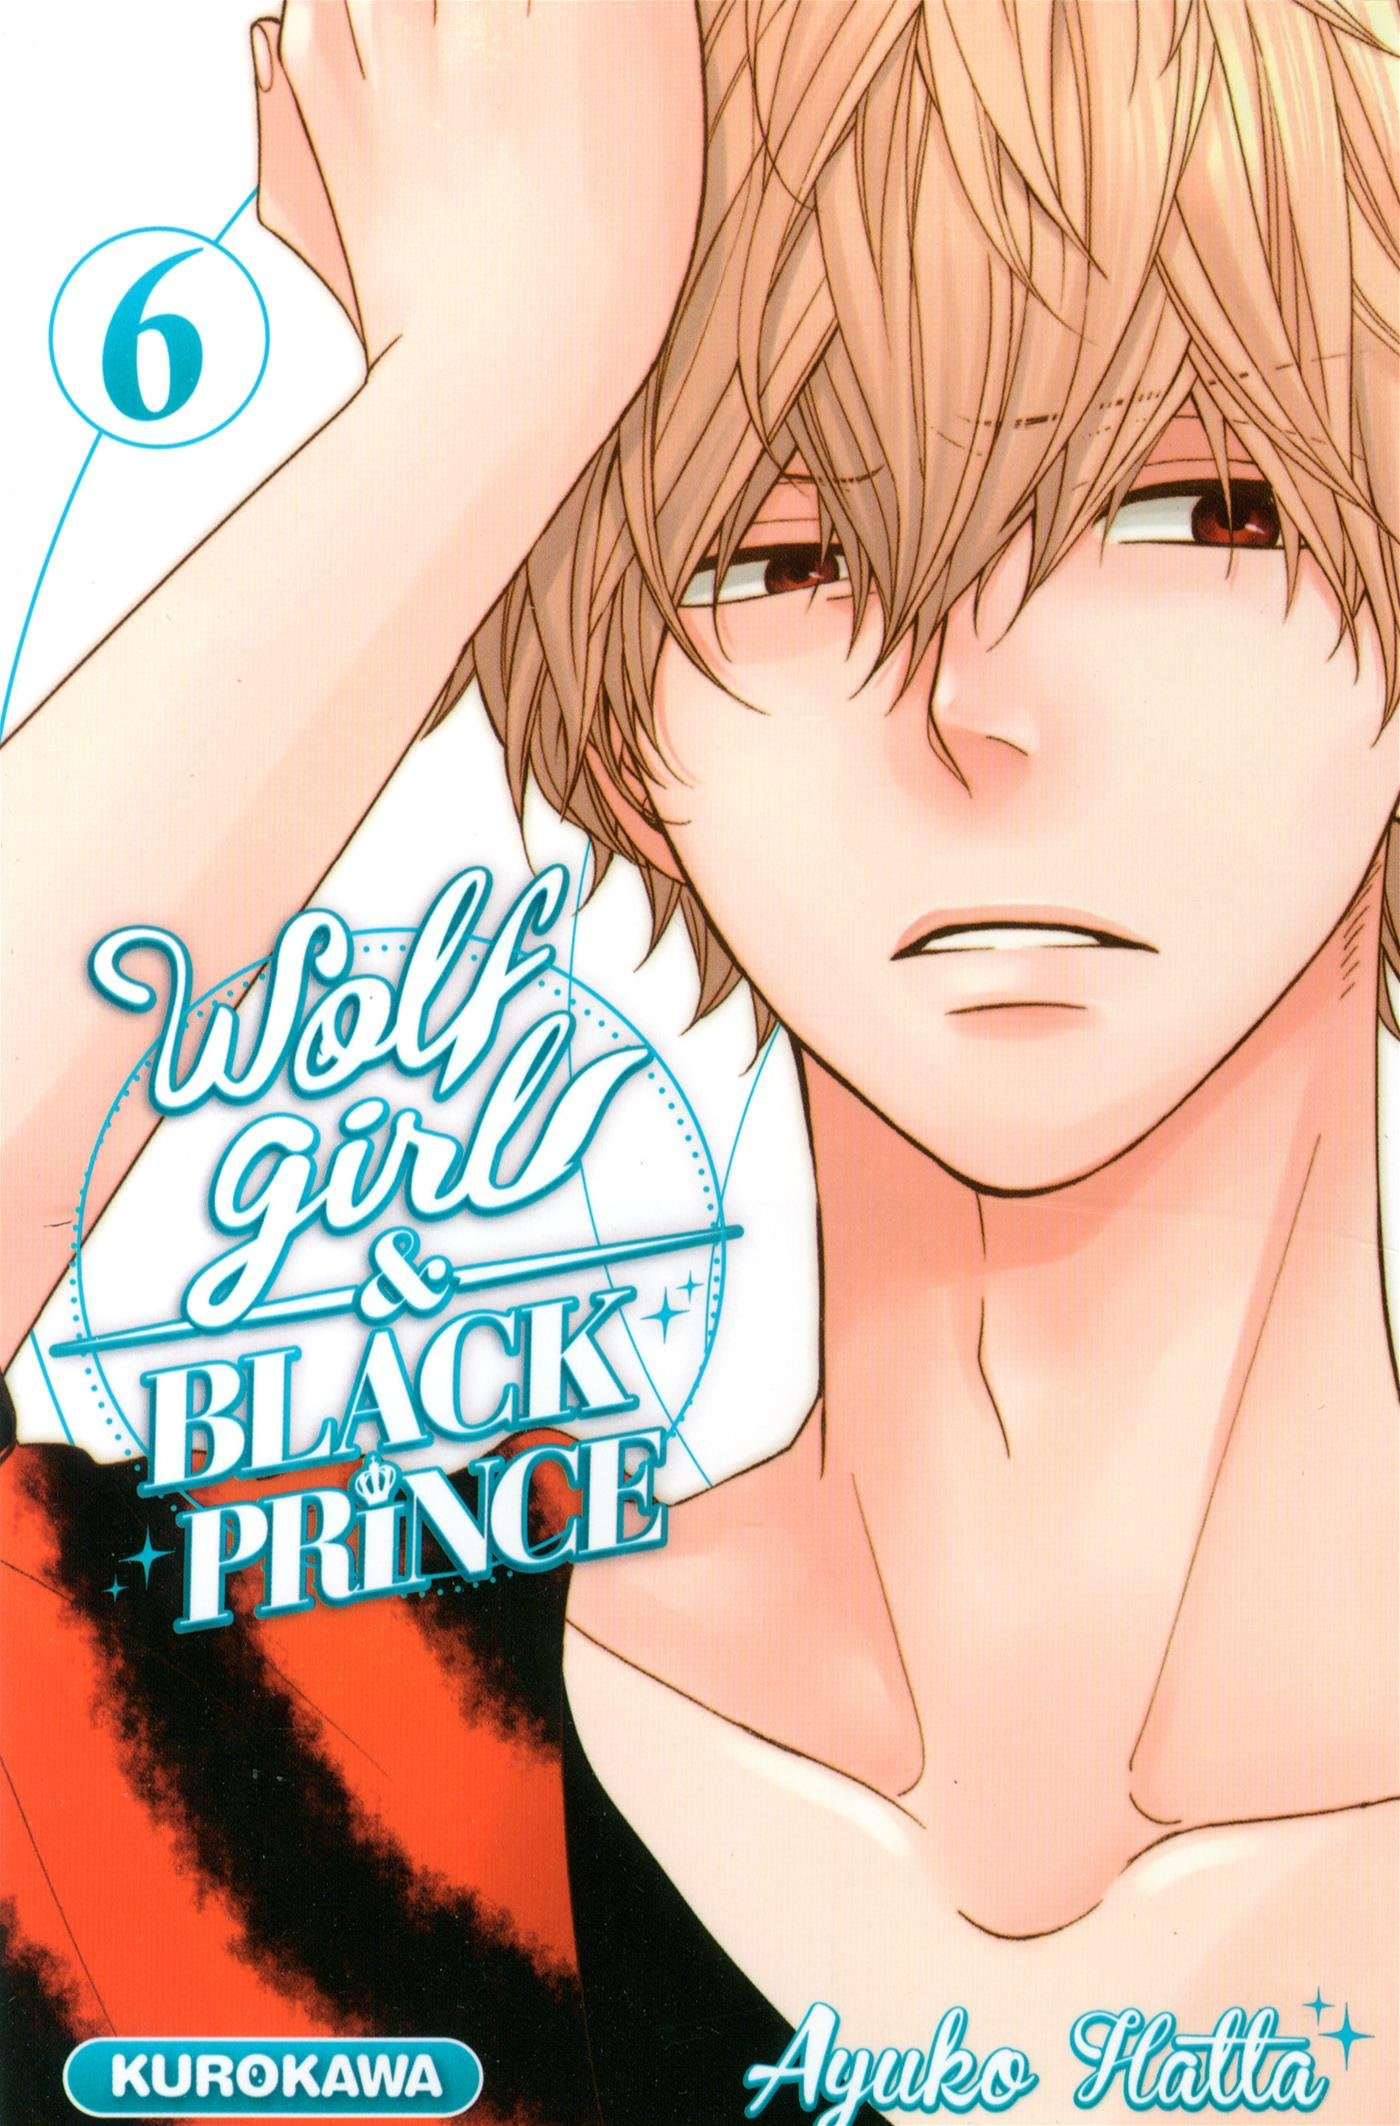 http://lesvictimesdelouve.blogspot.fr/2015/07/wolf-girl-and-black-prince-tome-6-de.html